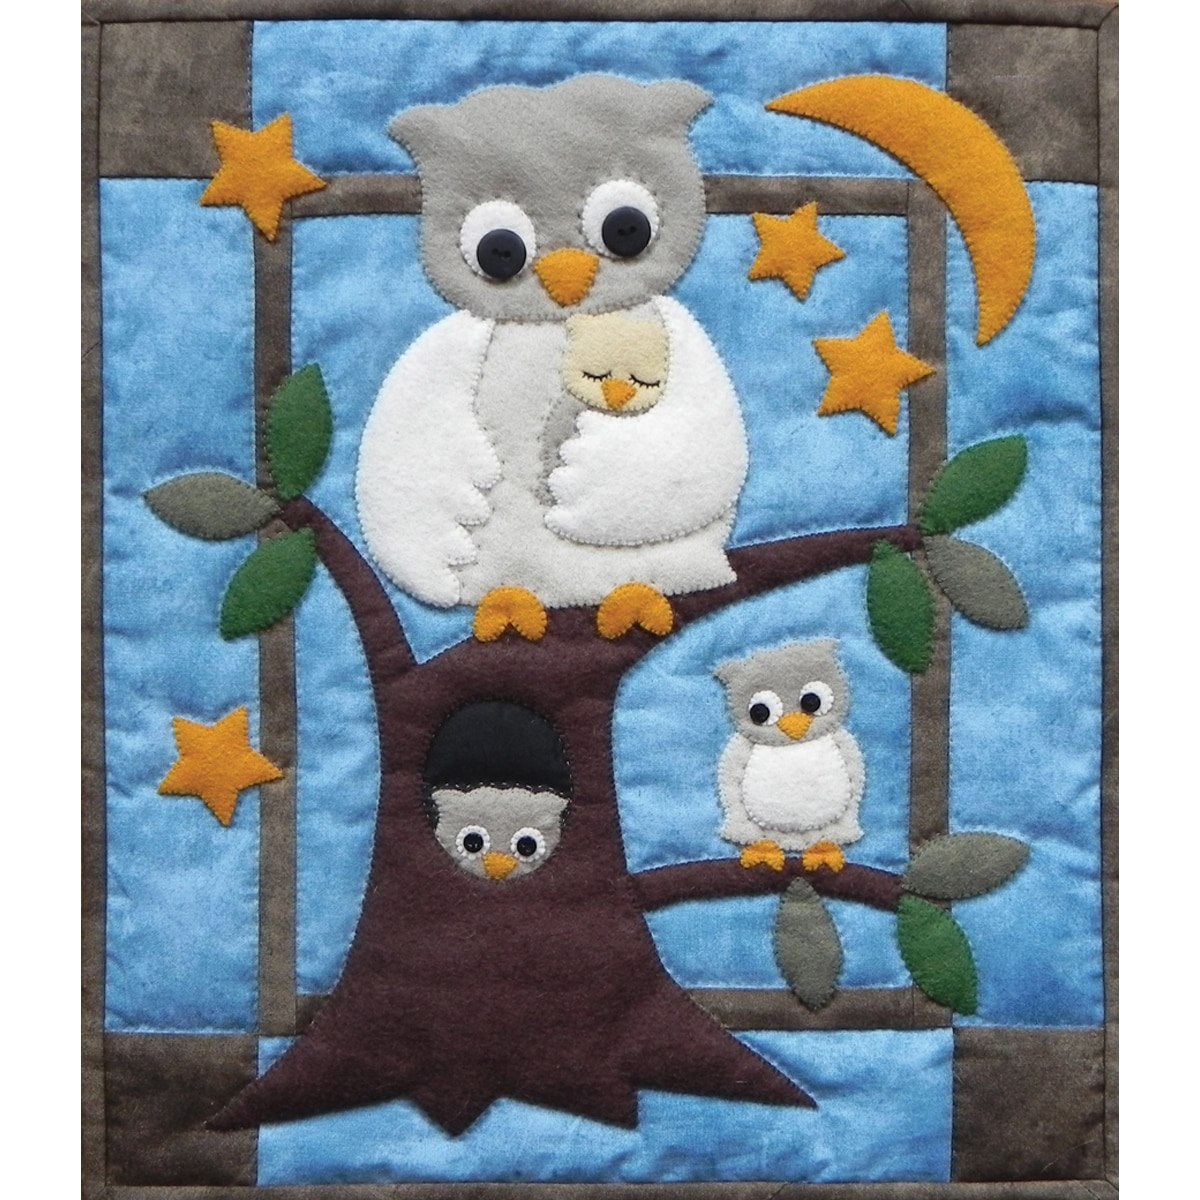 Rachel's Of Greenfield Owl Family Wall Hanging Quilt Kit-...